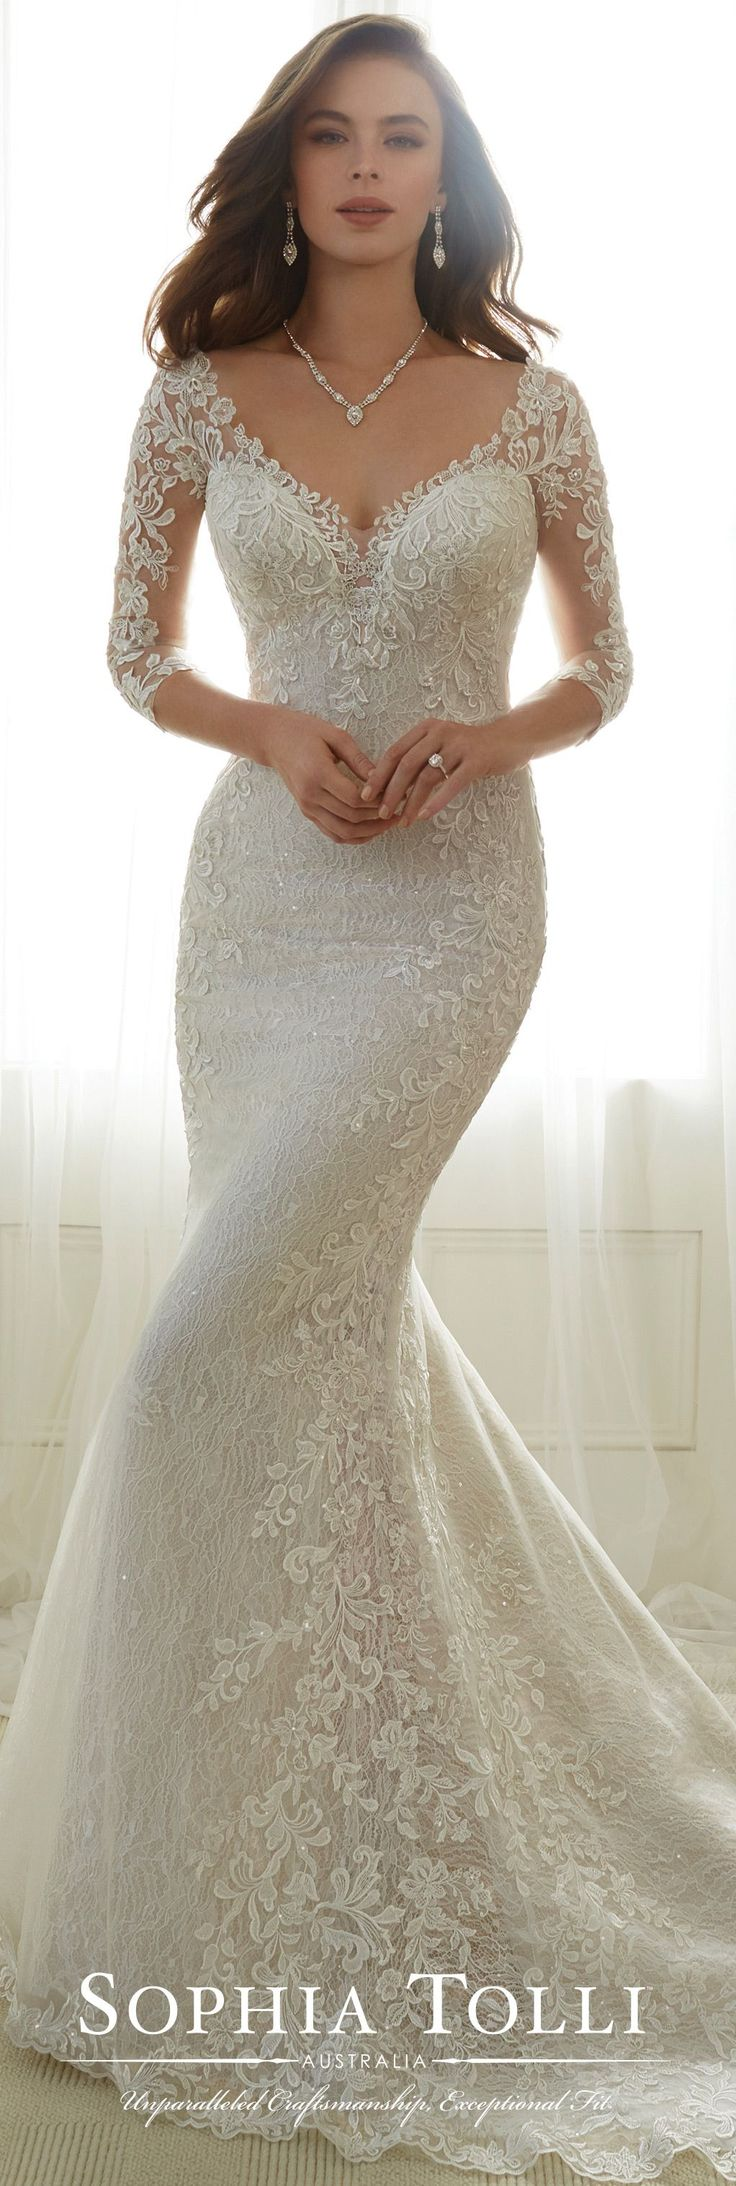 best novia images on pinterest wedding ideas gown wedding and